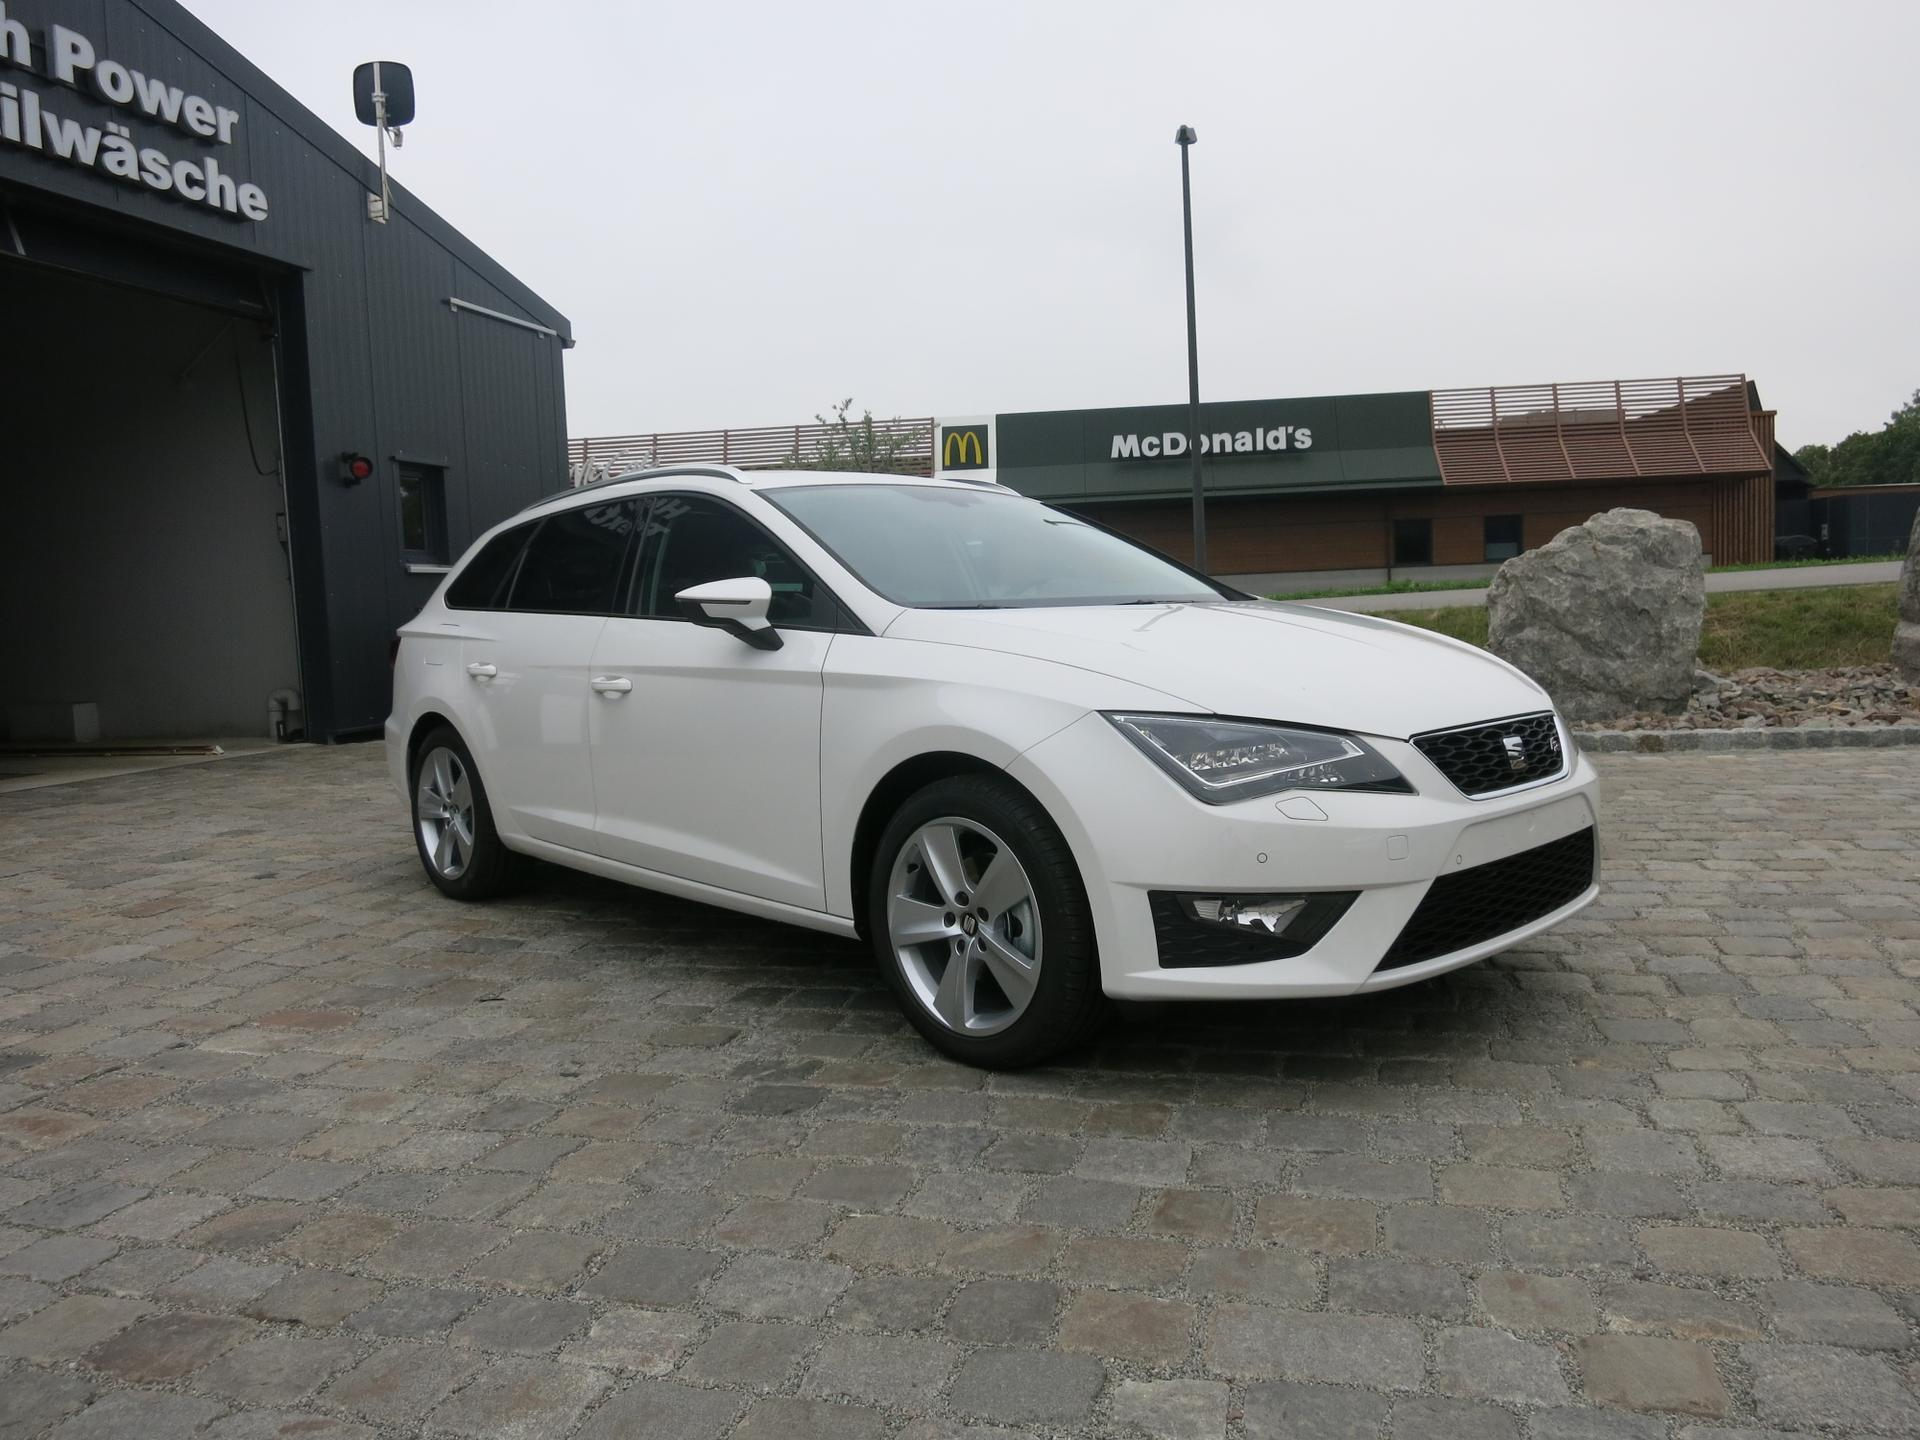 seat leon st fr sitzheizung alu 17 voll led sofort diesel. Black Bedroom Furniture Sets. Home Design Ideas